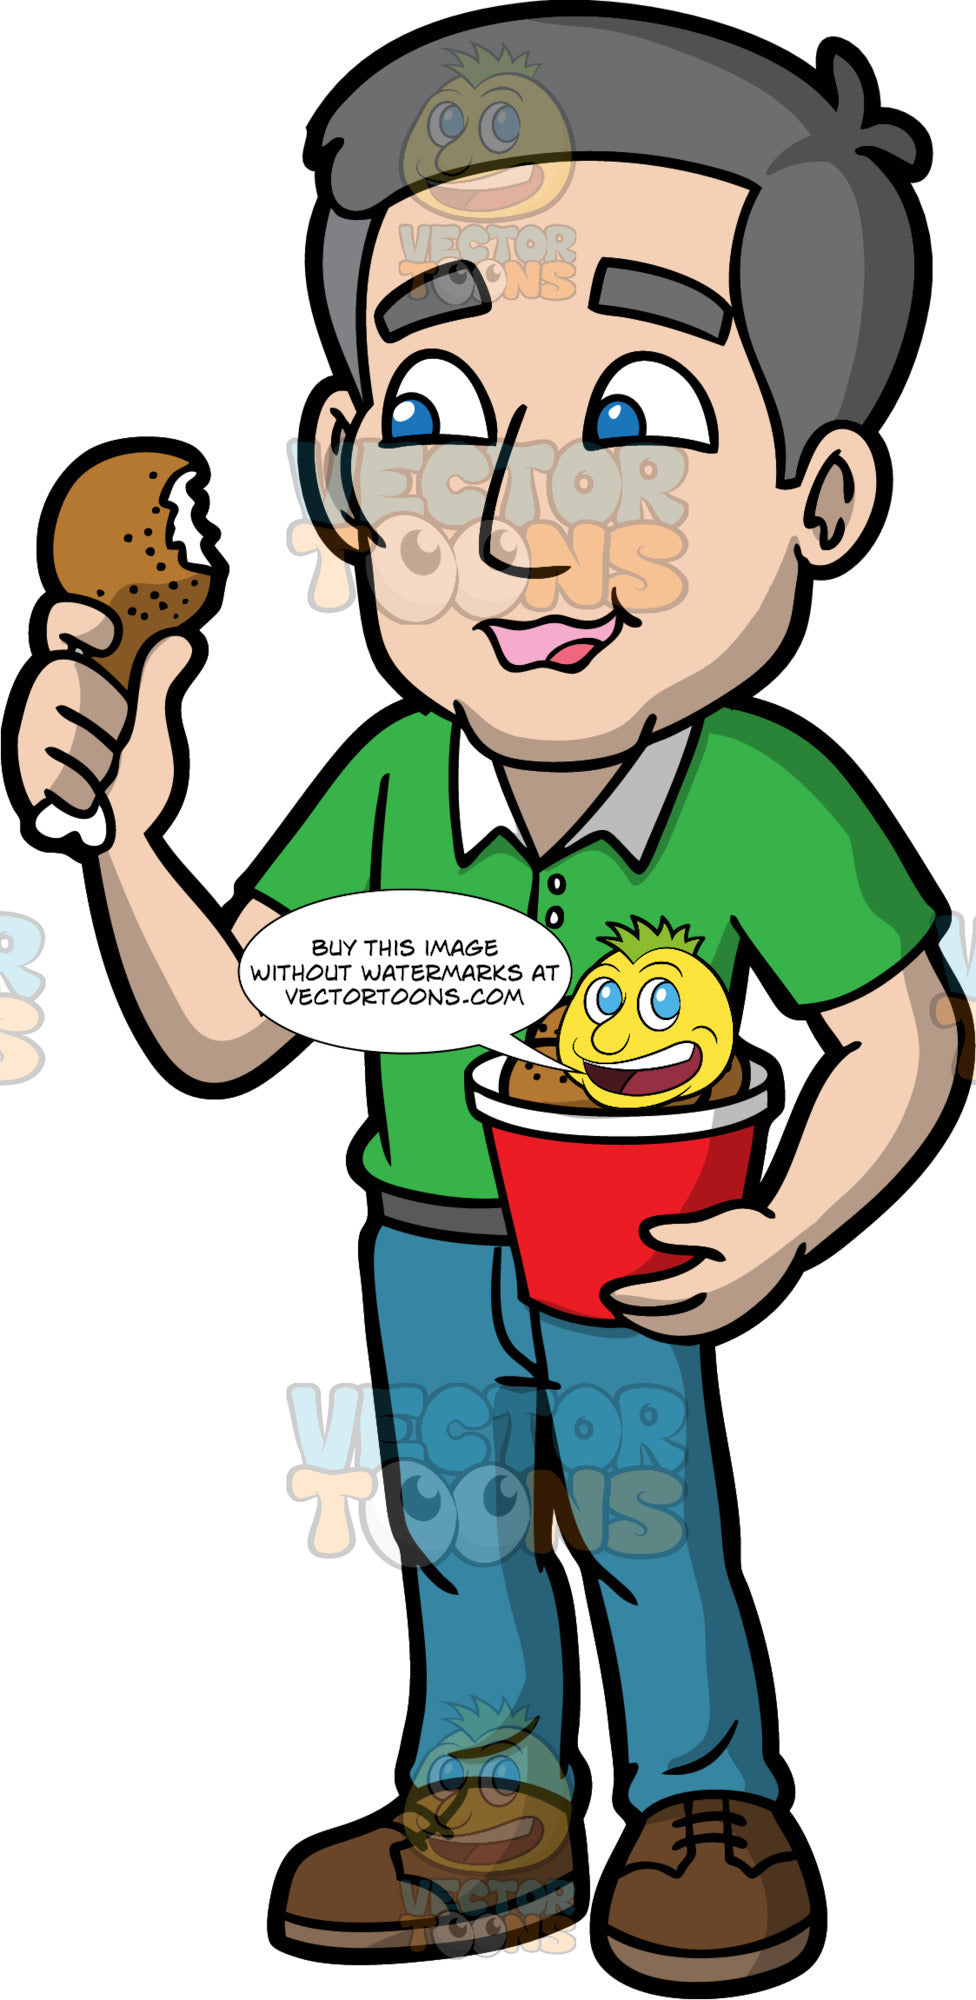 Bob Eating A Piece Of Fried Chicken. A mature man with gray hair, wearing blue pants, a green golf shirt, and brown shoes, enjoying a fried chicken leg